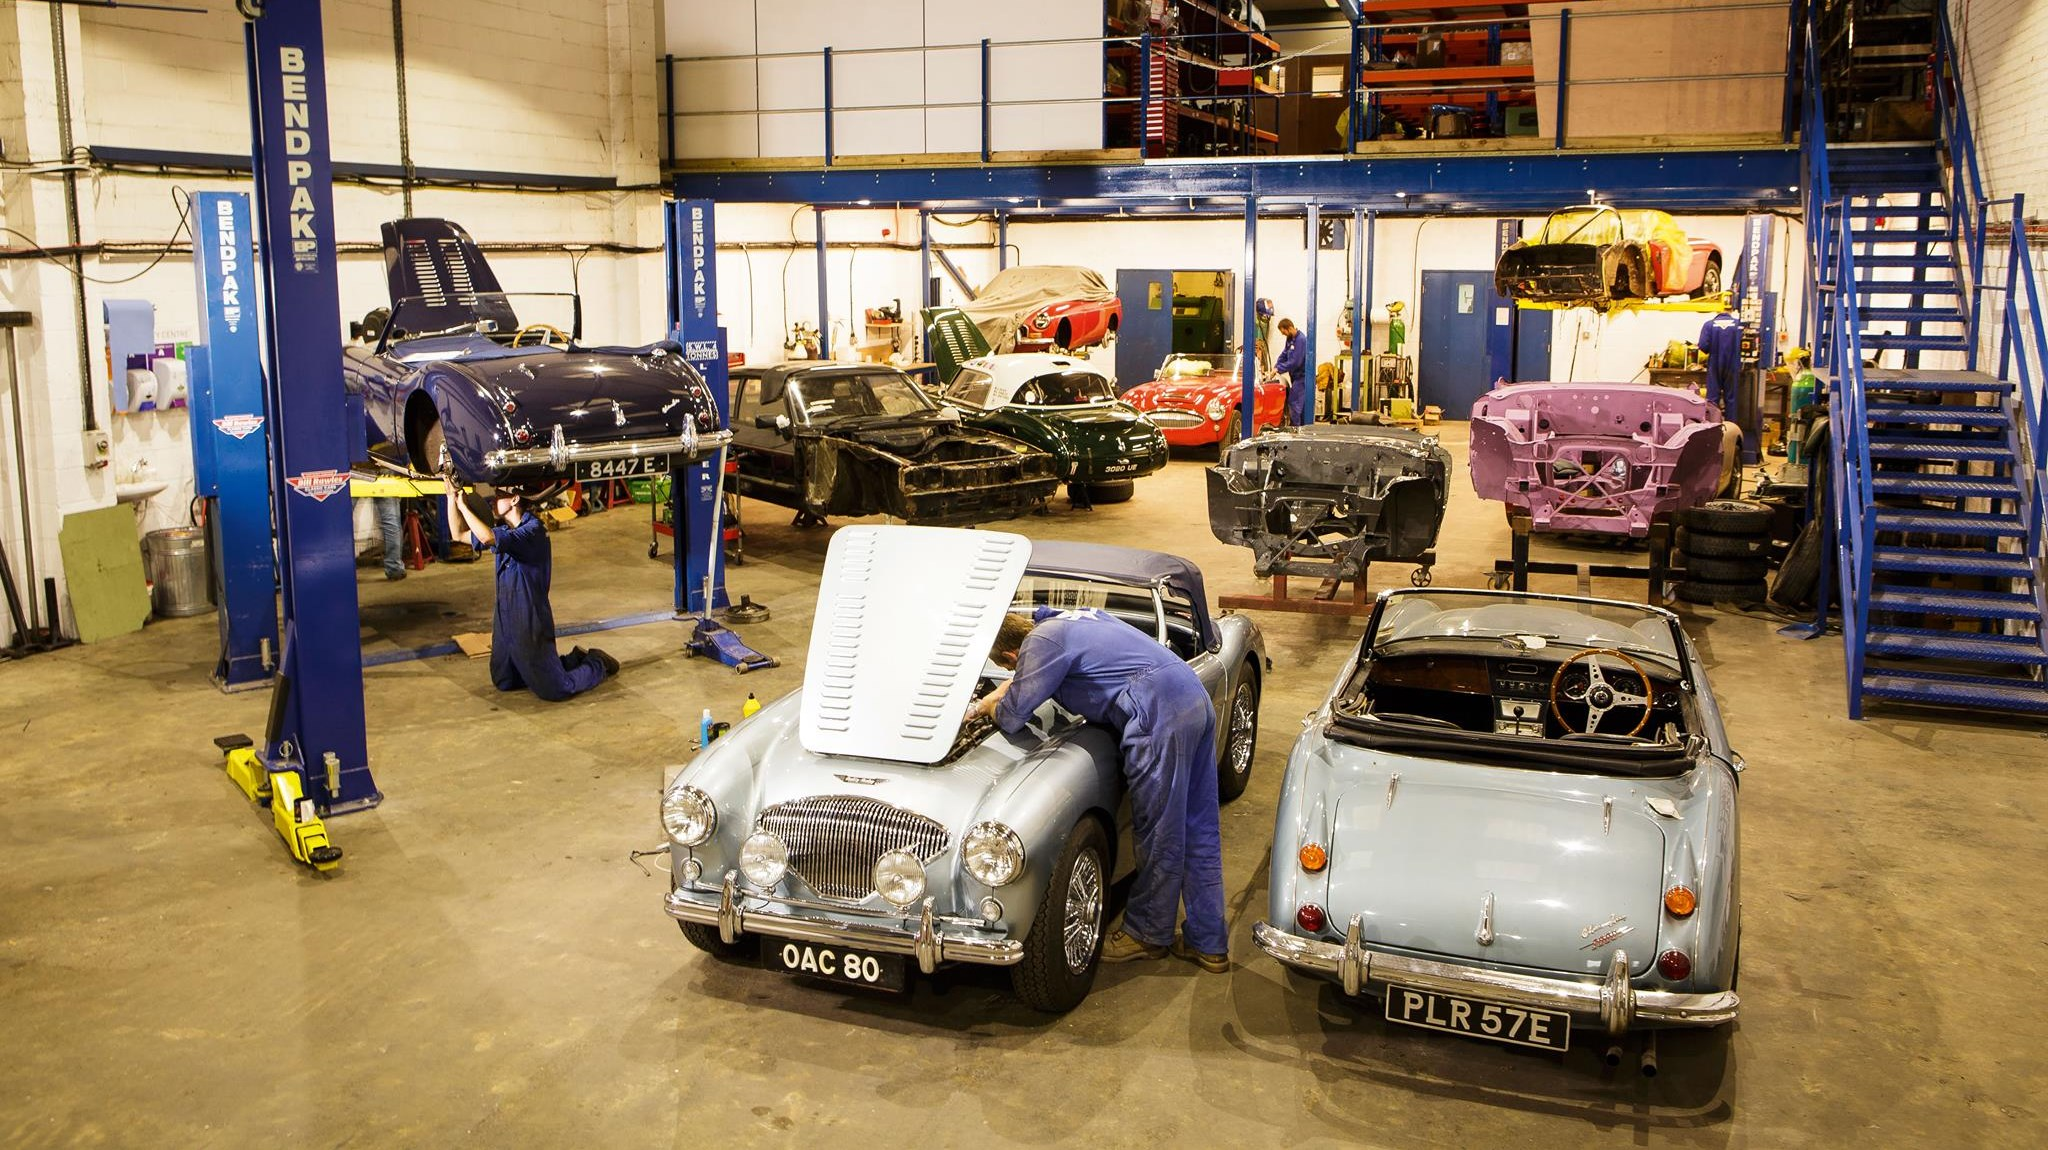 Bill Rawles Classic Cars Ltd new workshop - Unit 2, Dukes Mill, Station Approach, Medstead, Alton, Hants, GU34 5EN